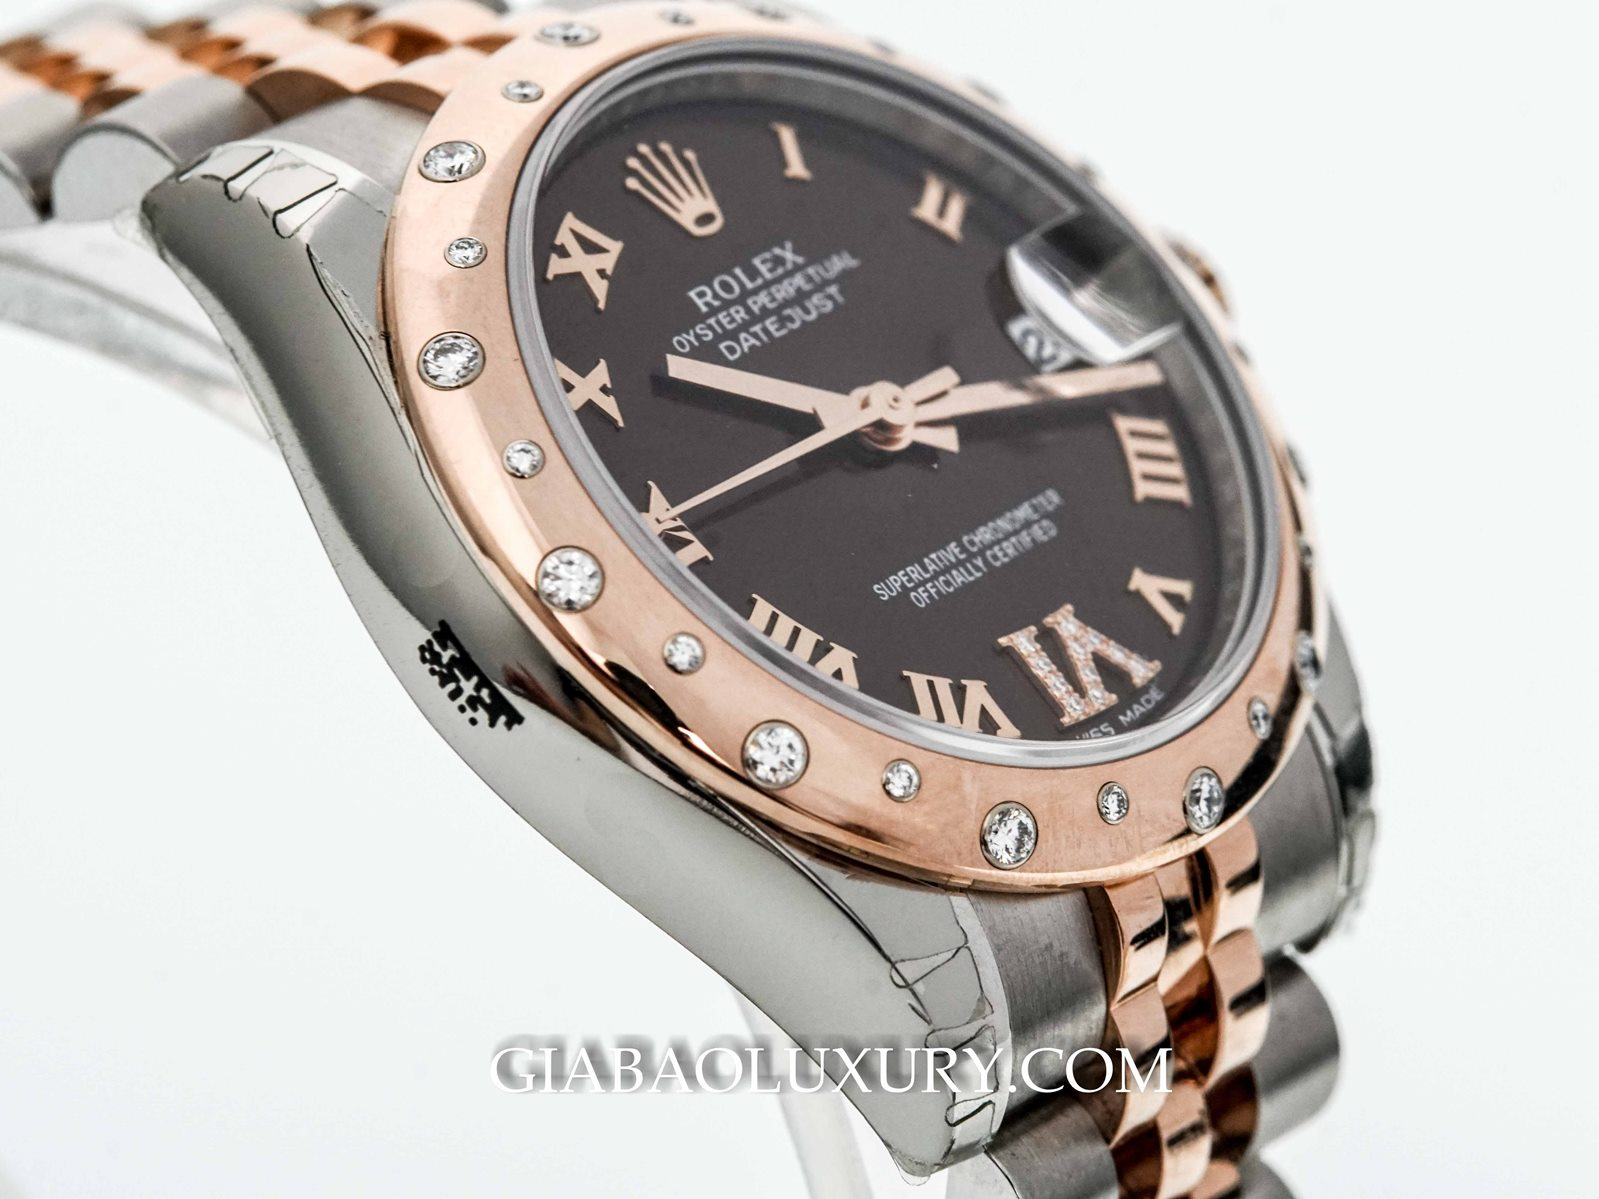 Đồng Hồ Rolex Oyster Perpetual Datejust 178341